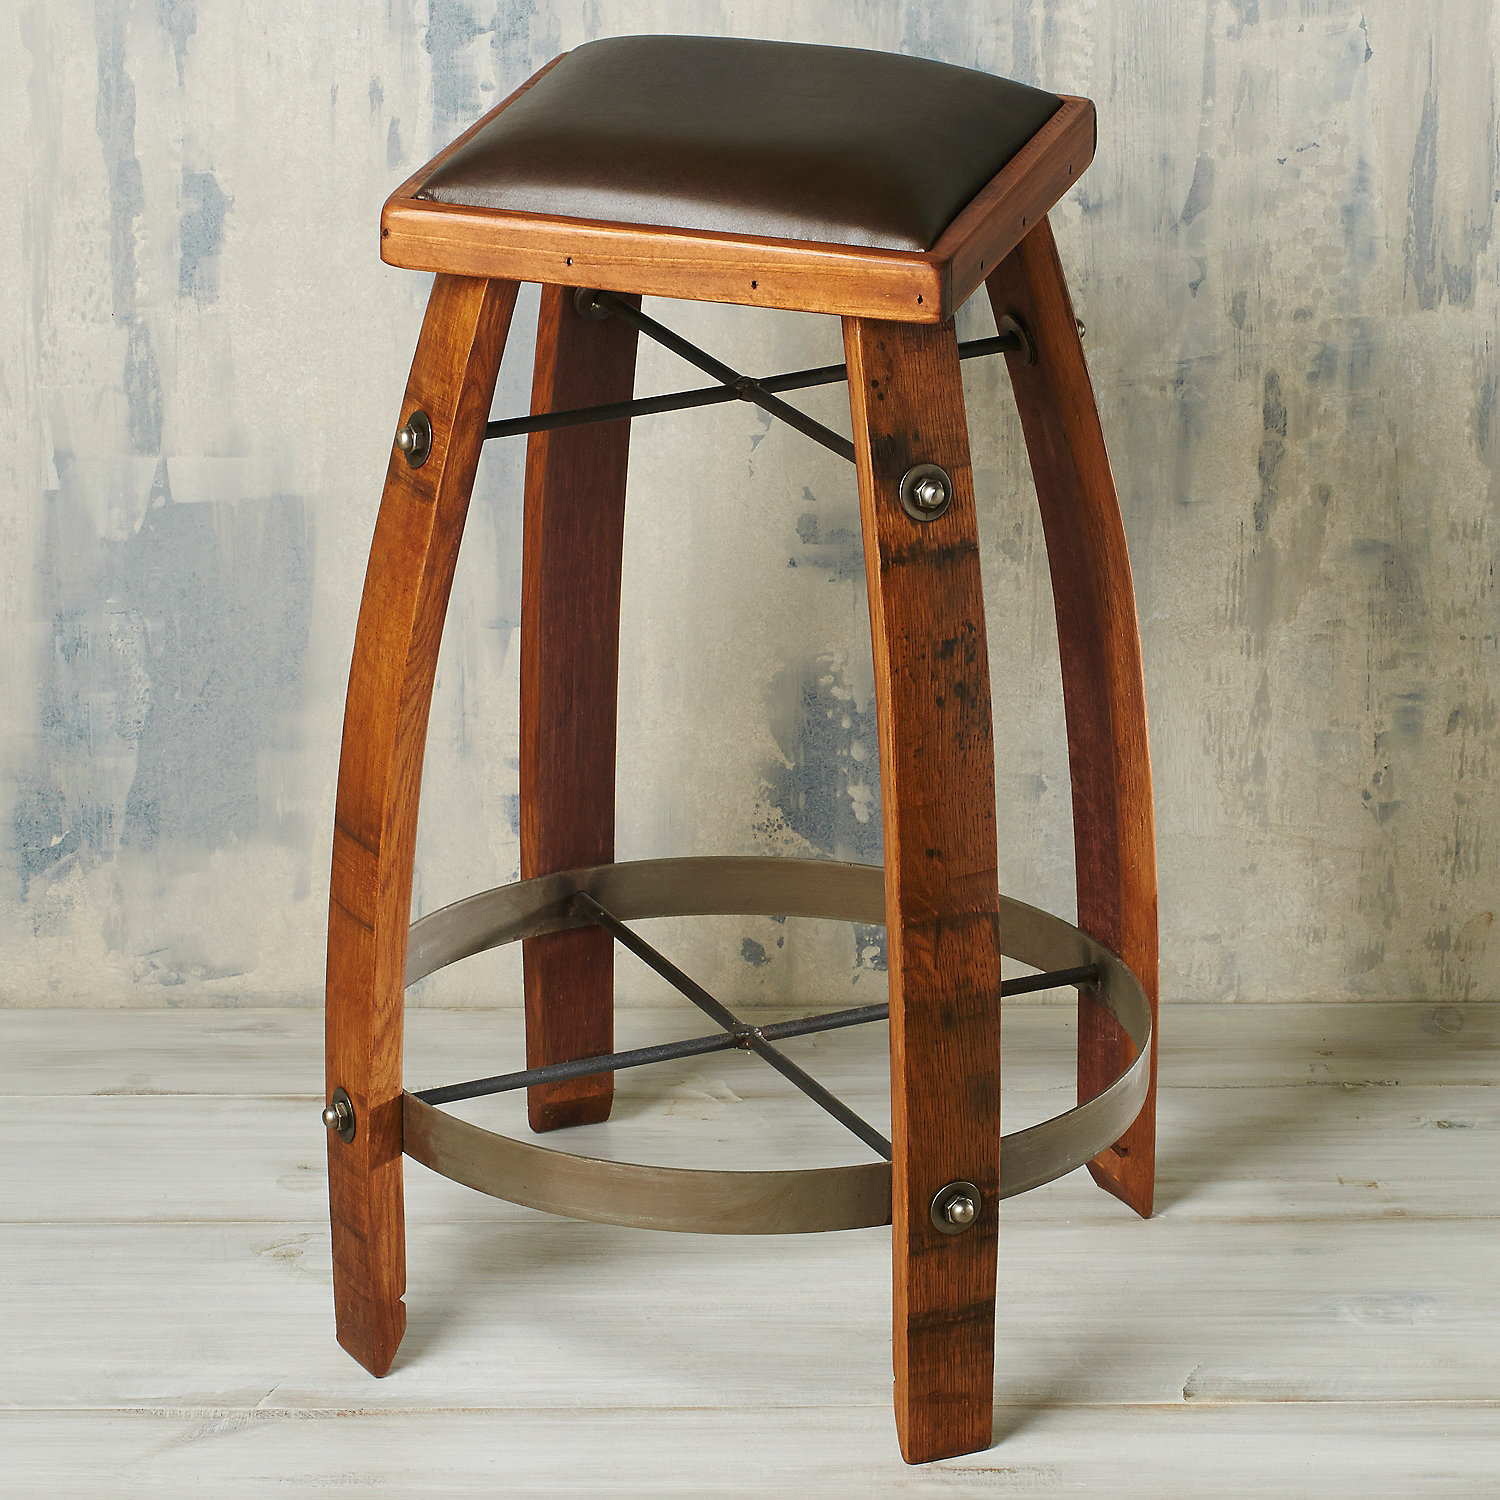 Vintage Oak Wine Barrel Bar Stool 28 Inches with Chocolate Leather Seat & Wine Barrel Furniture - Wine Enthusiast islam-shia.org